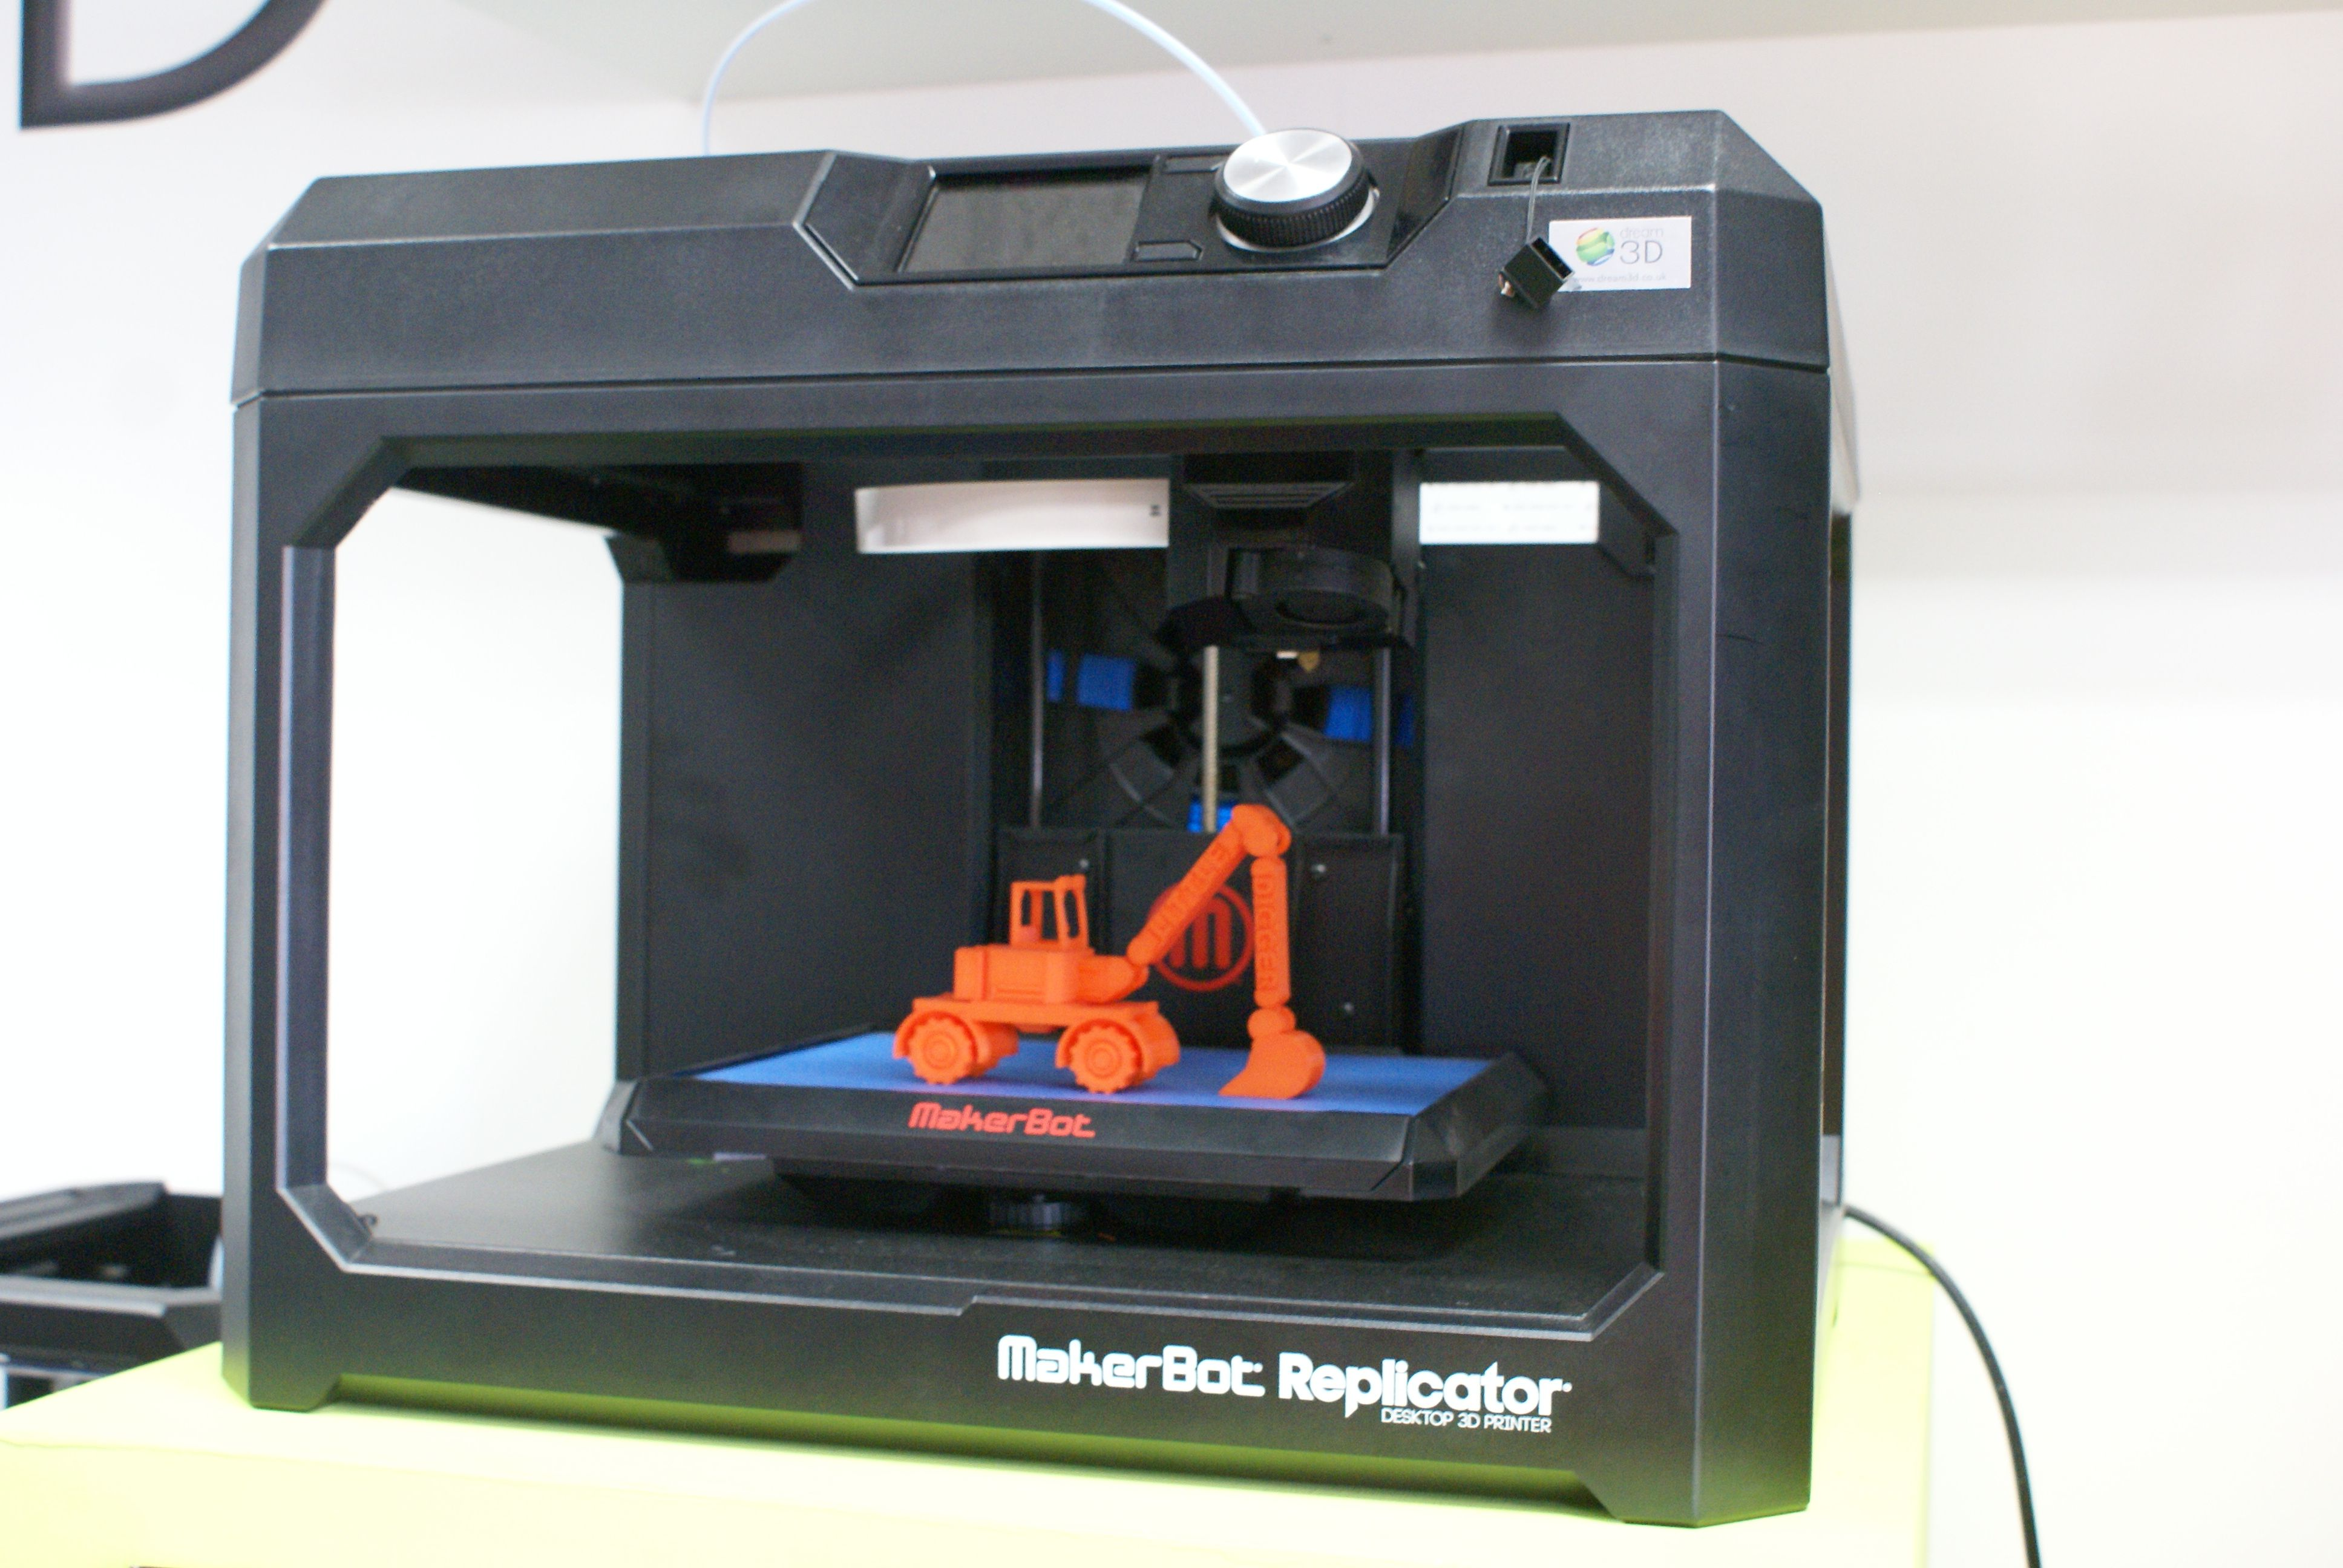 MakerBot Replicator (5th Gen)  Key Features: 3 5 inch Full Colour